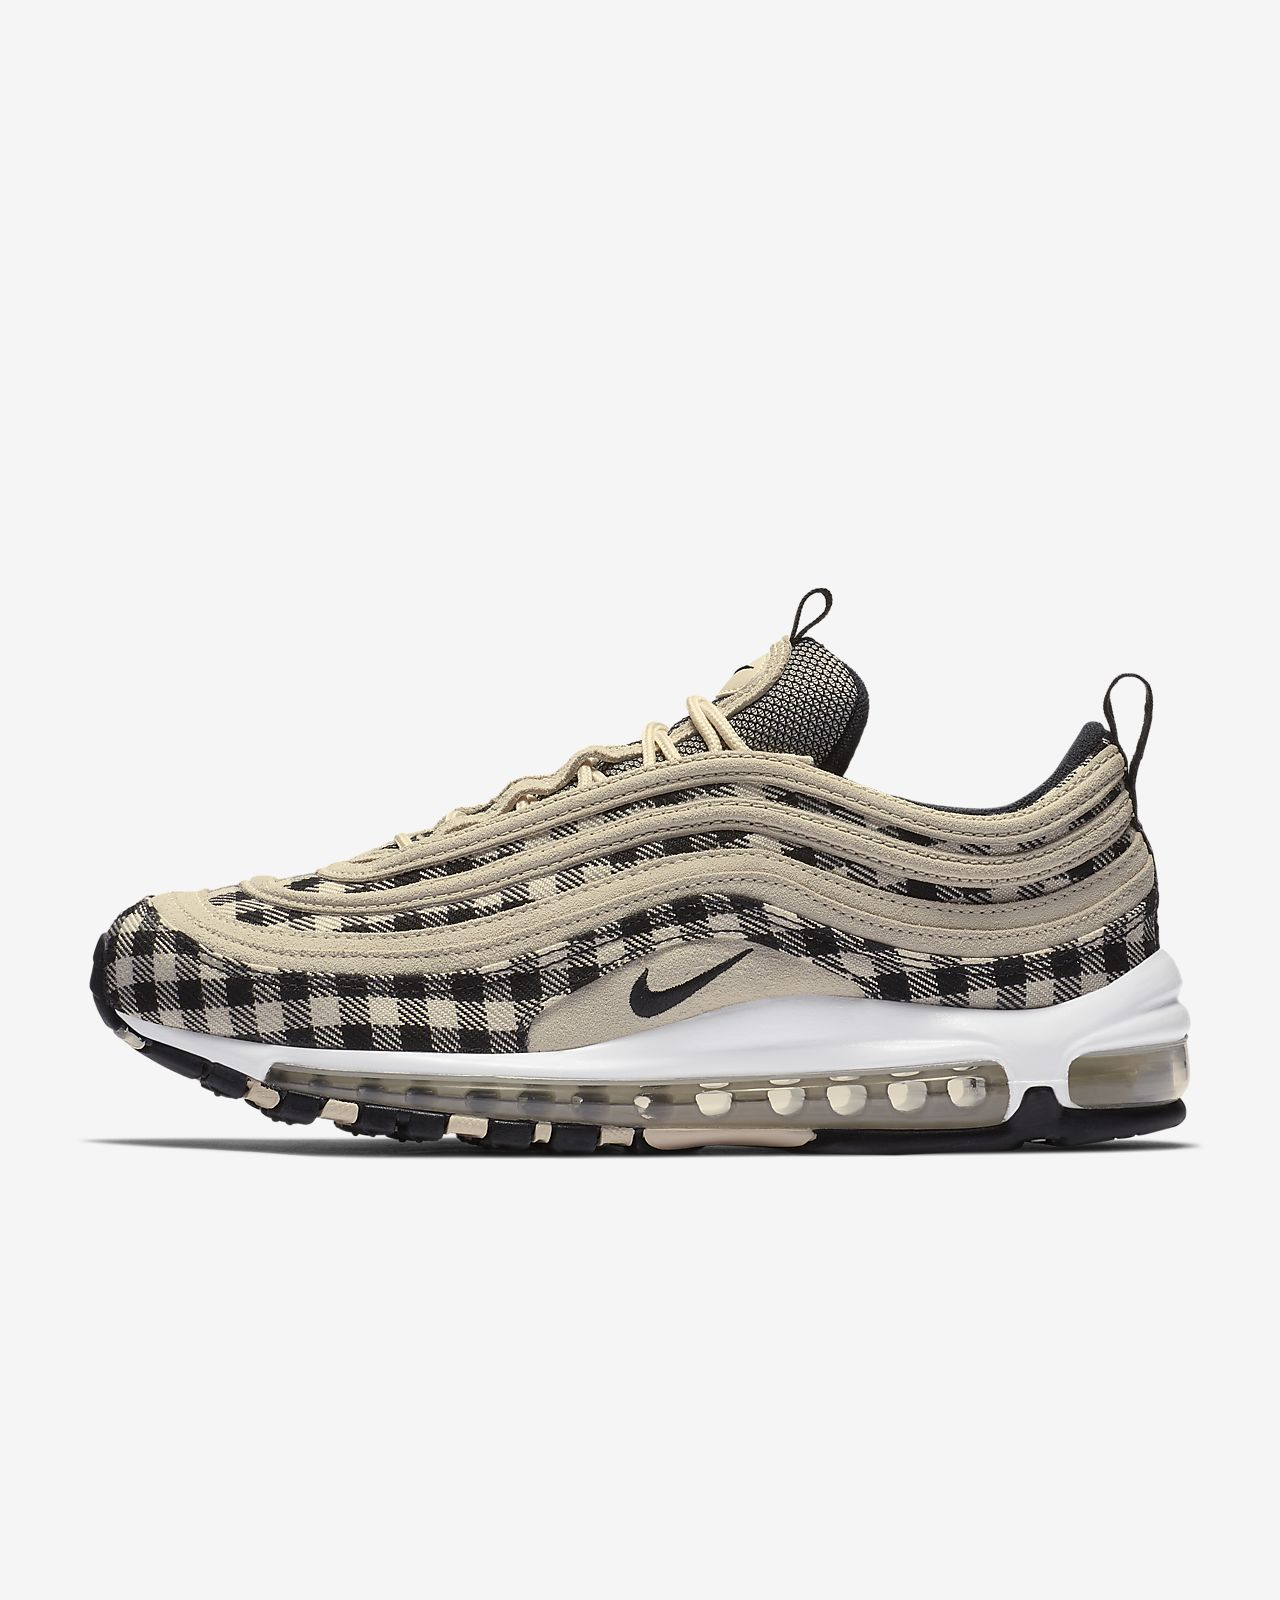 8f6e140acd79 Nike Air Max 97 Premium Men s Shoe. Nike.com